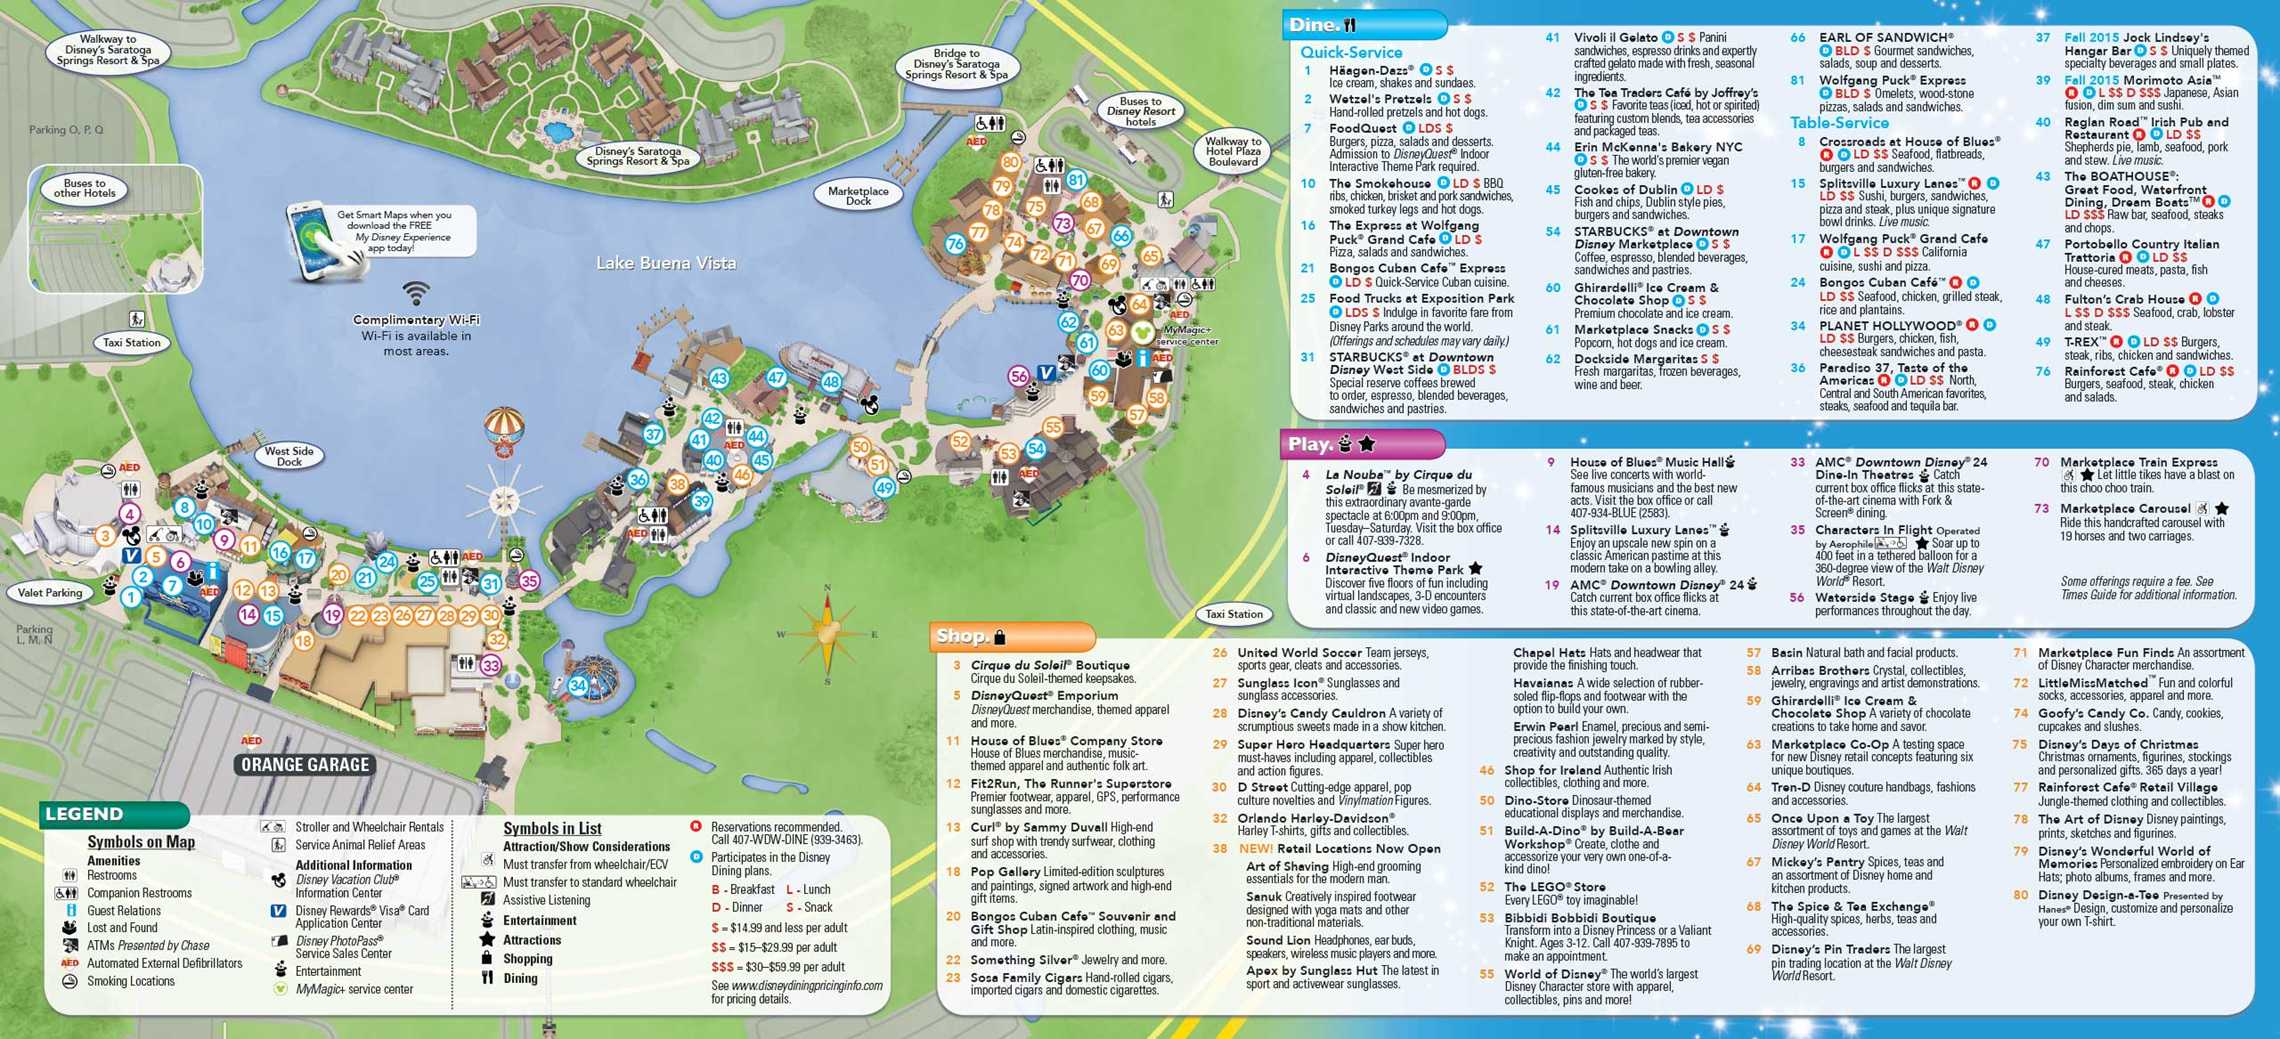 Downtown Disney / Disney Springs August 2015 Guide Map